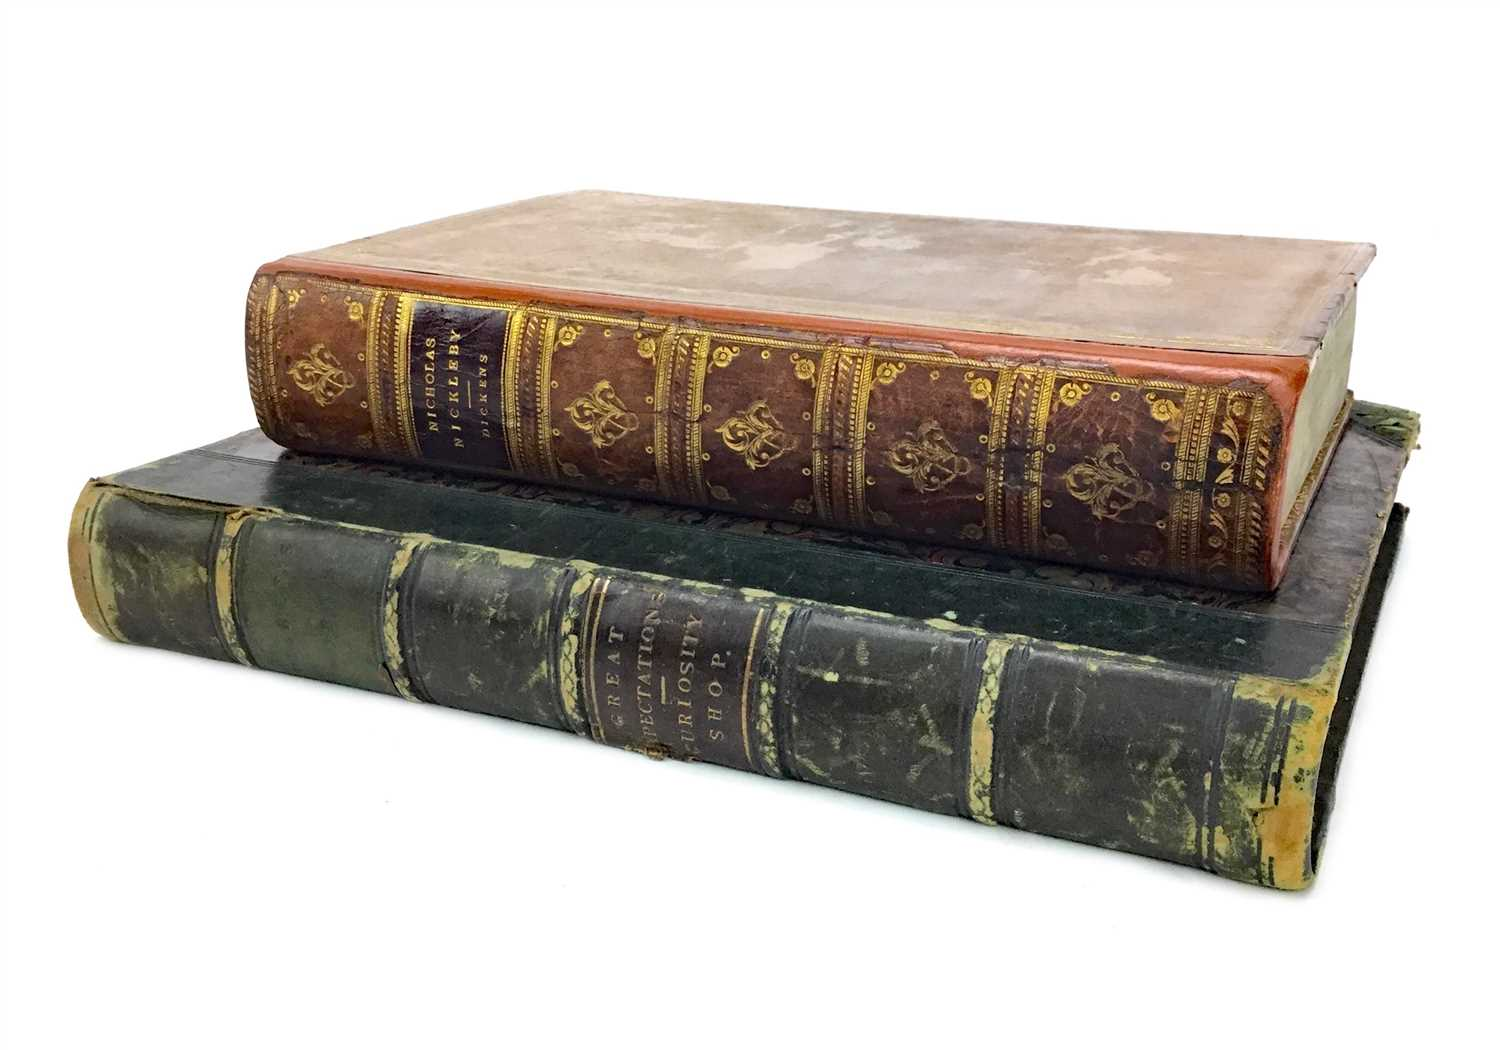 Lot 849-THE LIFE AND ADVENTURES OF NICHOLAS NICKLEBY, BY CHARLES DICKENS